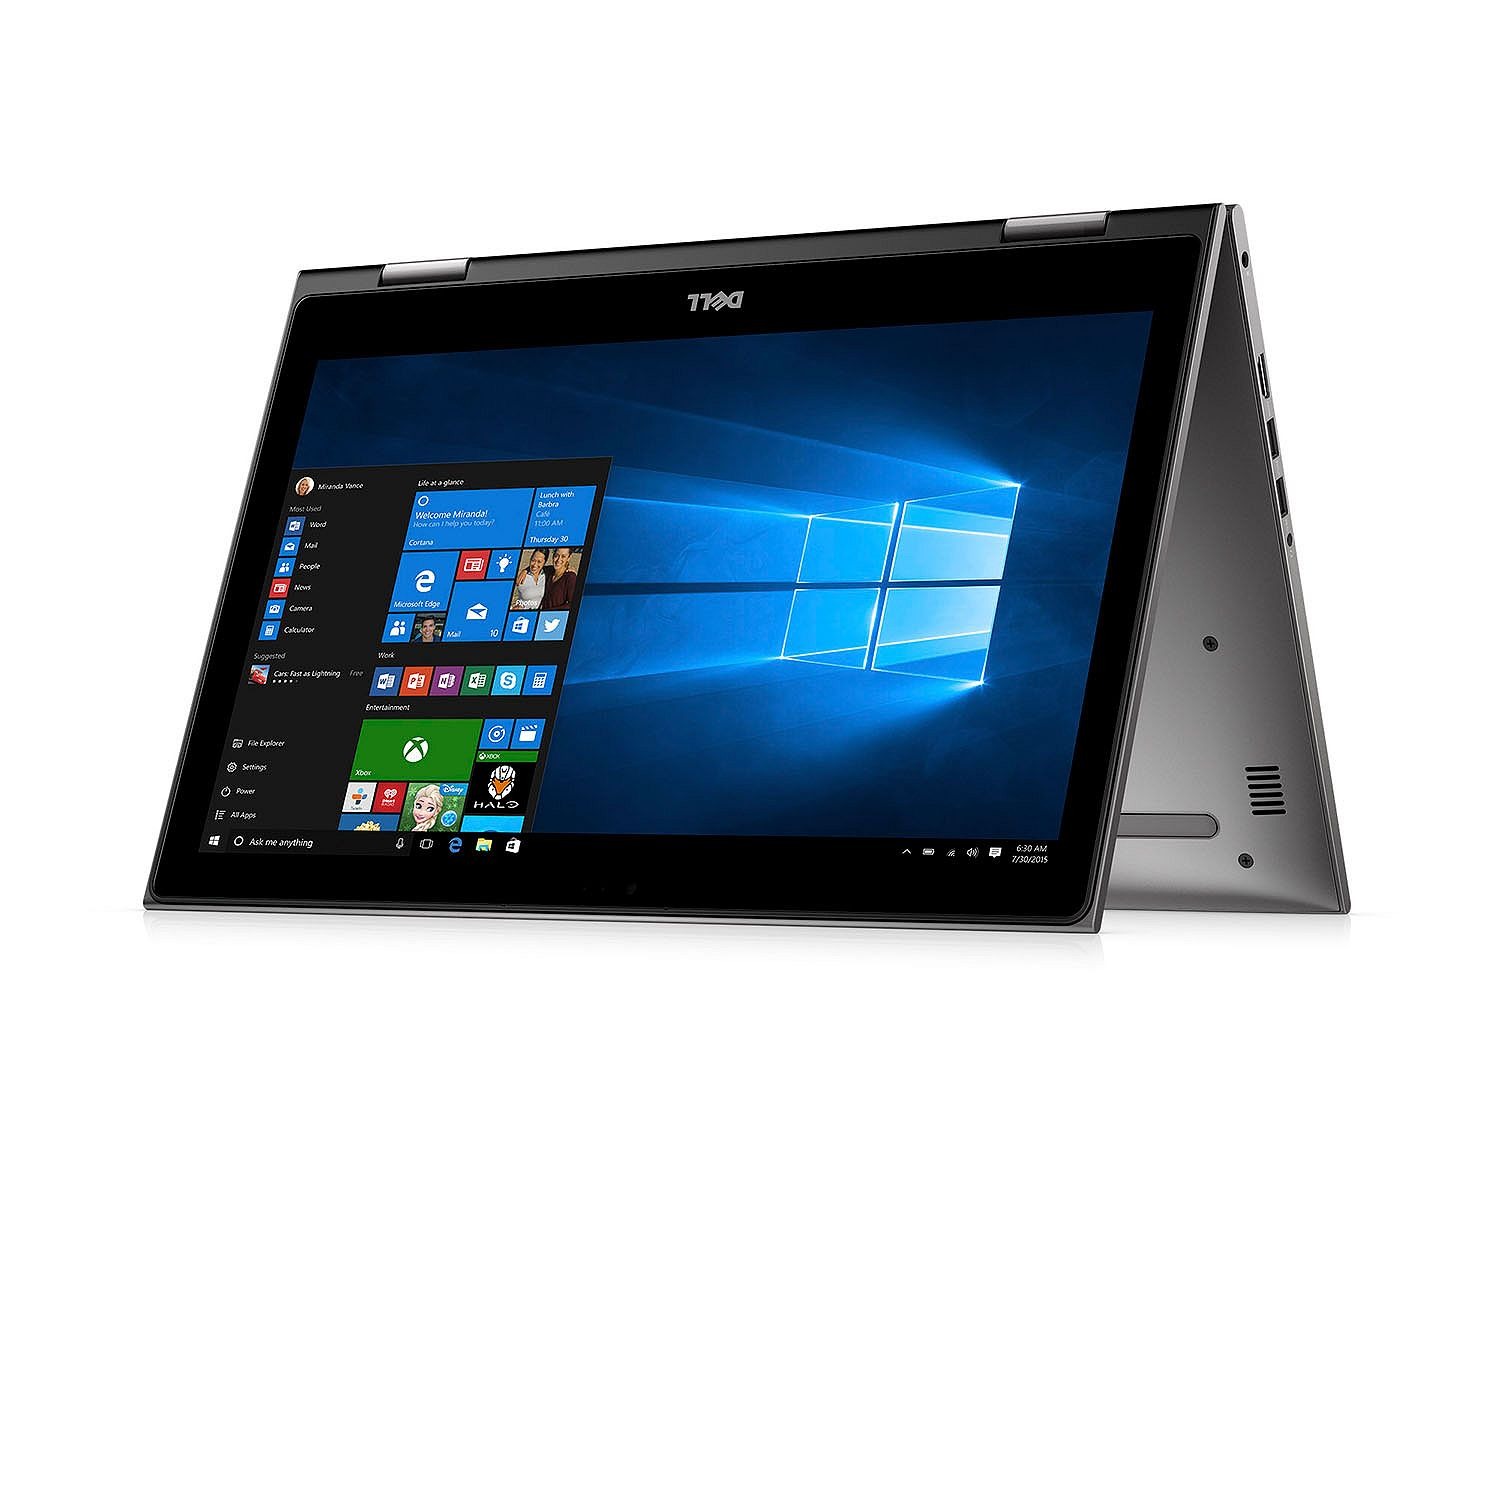 Inspiron 15 5000 2-in-1, i5578-3052GRY, 15.6-inch FHD Touch (1920x1080), IntelR Core i3-7100U, 8GB 2400MHz DDR4, 1 TB 5400 RPM HDD, Intel HD Graphics 620